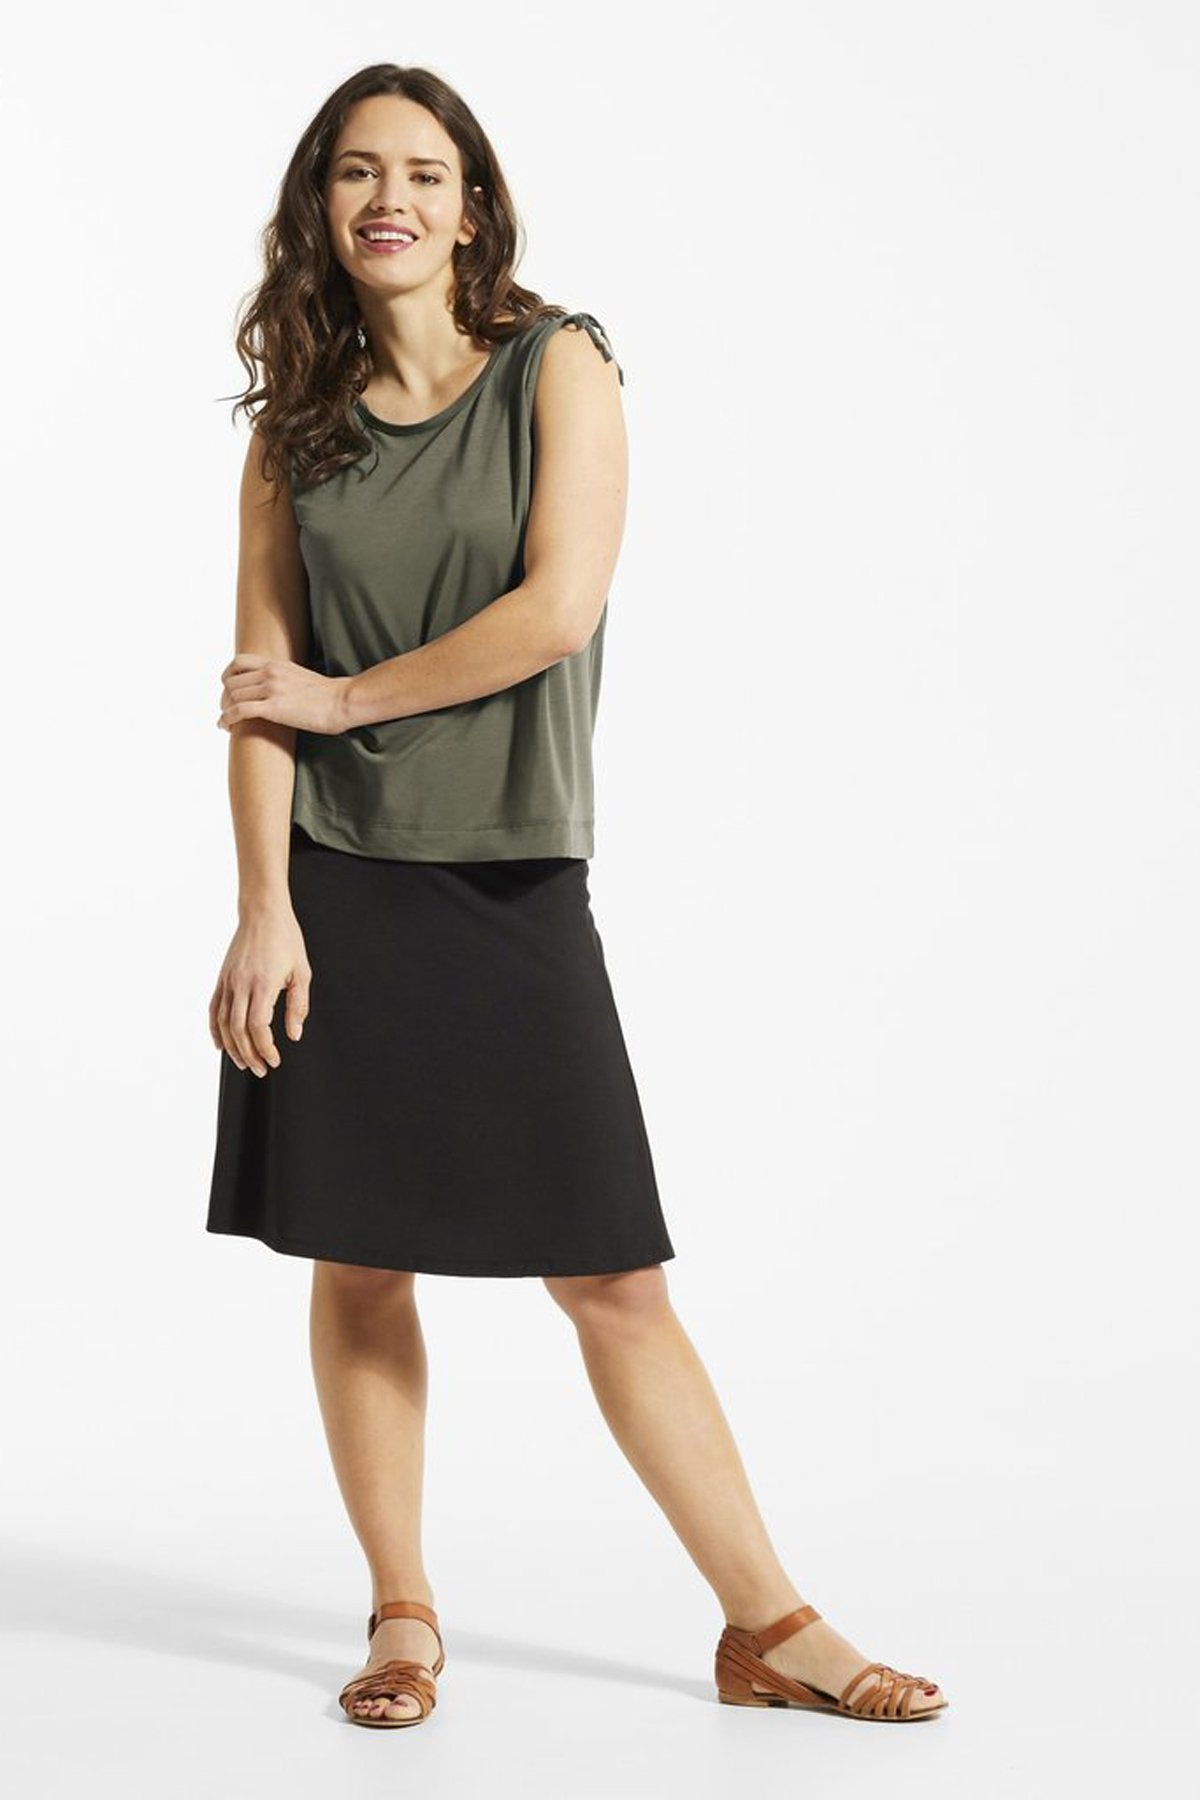 SUD Top by FIG Clothing, Acacia, tank top, drawstrings at shoulders, Drirelease fabric, sizes XS to XL, made in Canada